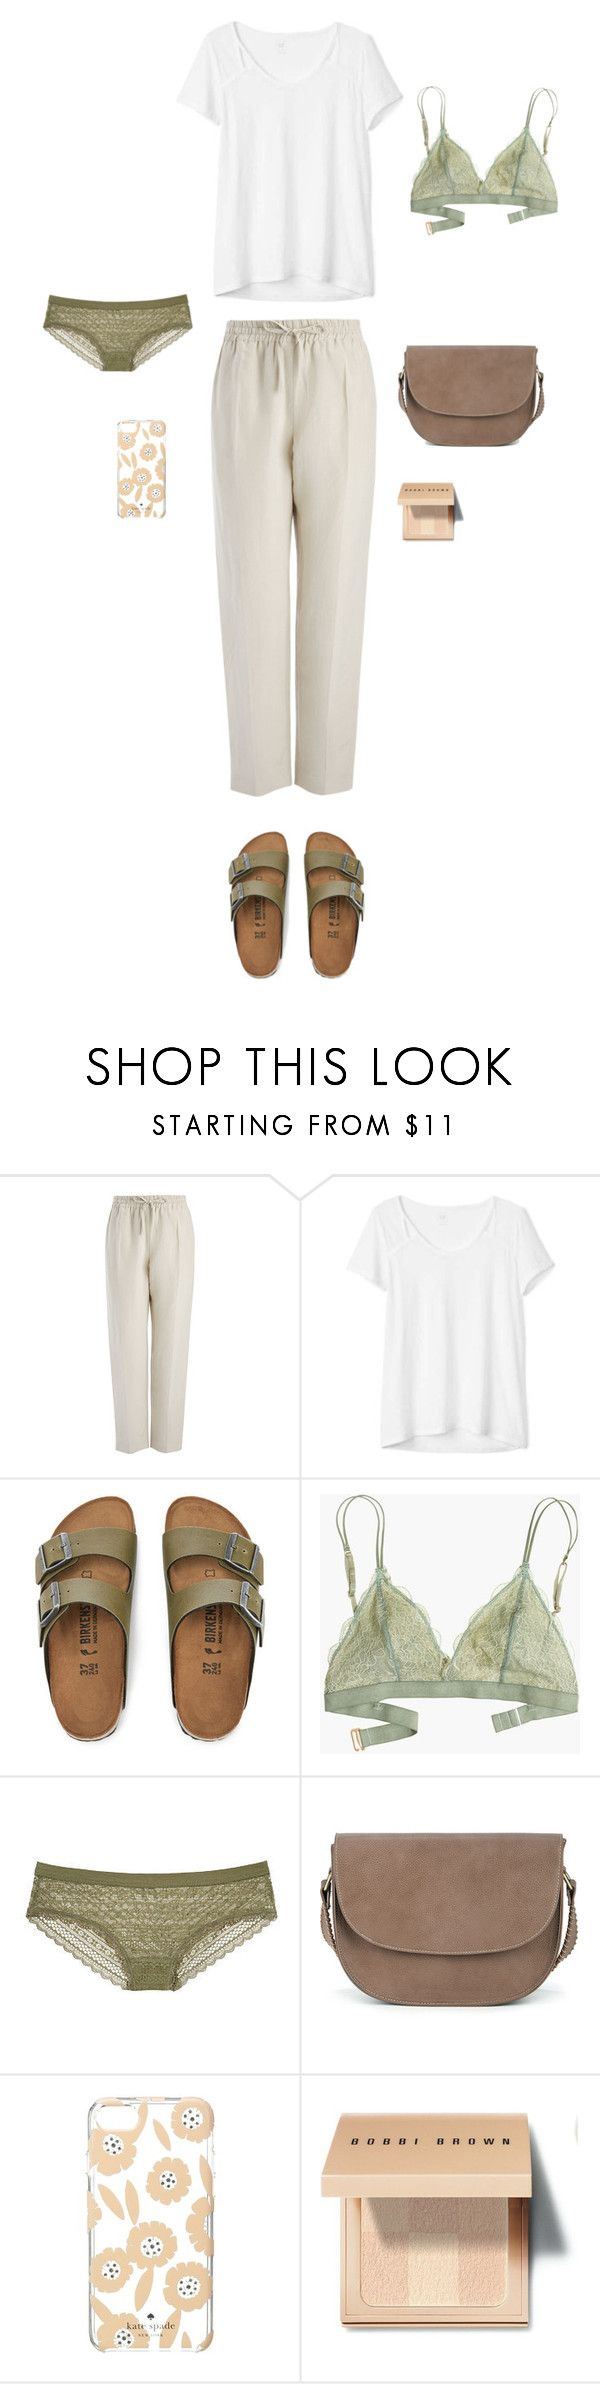 """""""27."""" by olinka1408 ❤ liked on Polyvore featuring Joseph, Gap, Birkenstock, Madewell, Sole Society, Kate Spade and Bobbi Brown Cosmetics"""